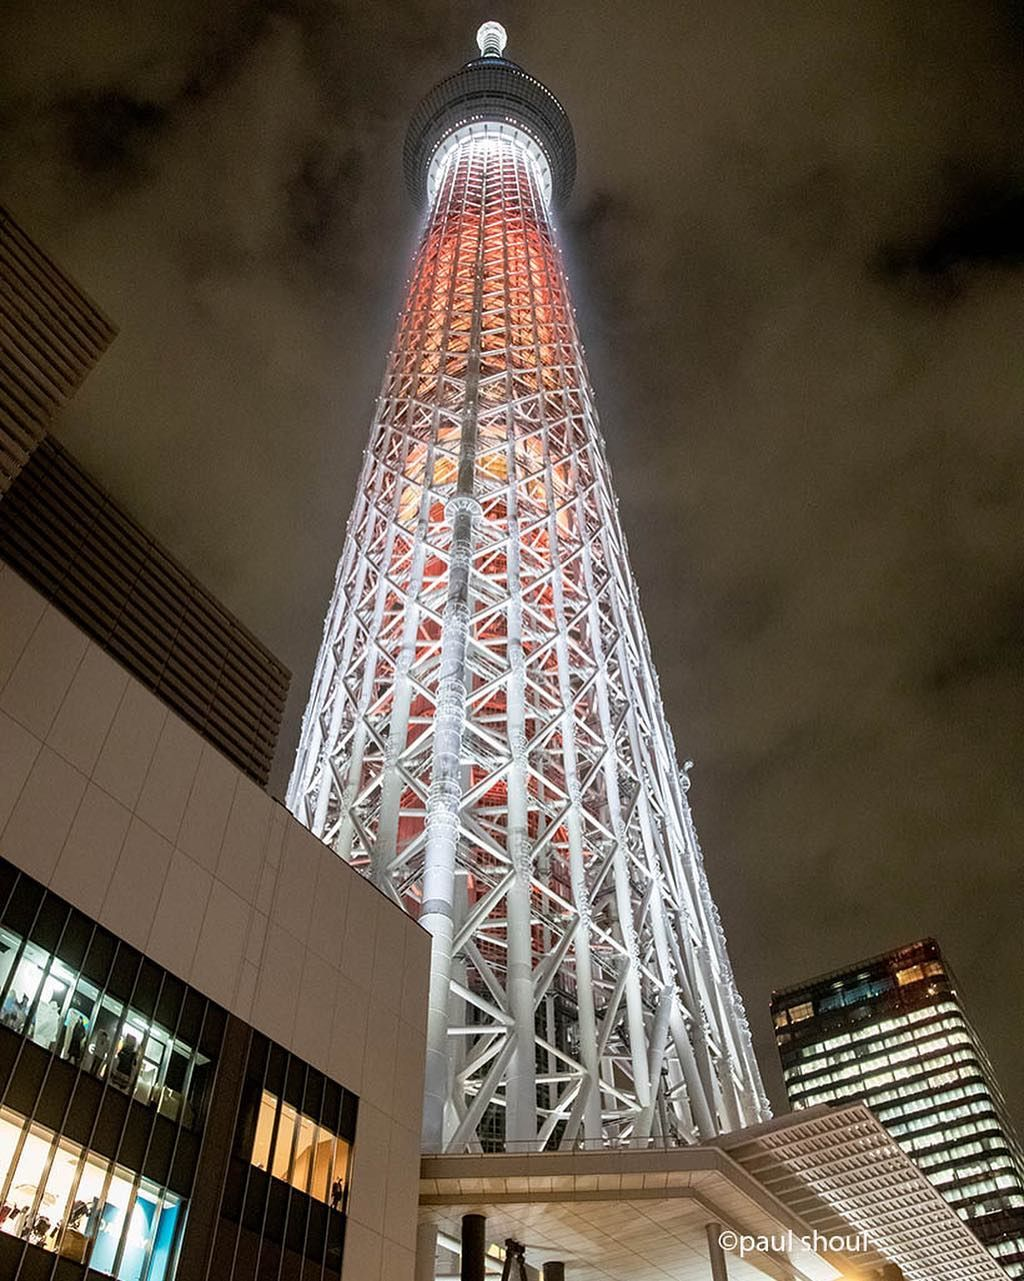 Tokyo Skytree tower. #japan #streetview #skytreetower #photographyislife #travel #worldstallestbuilding #instajapan #japantrip #japanlover #broadcast